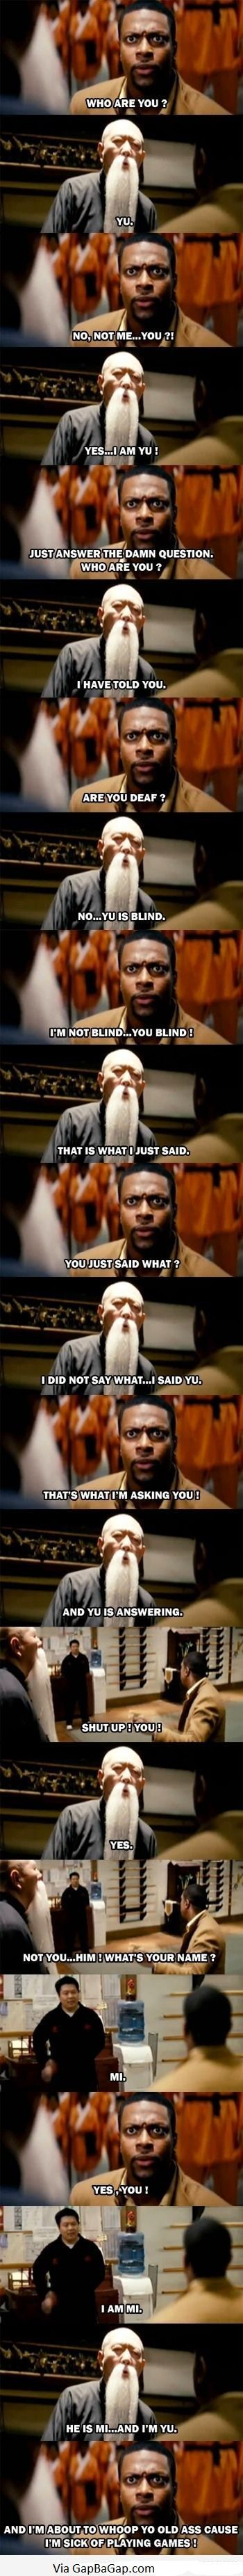 Funny Pictures Of Chris Tucker vs. Chinese Man